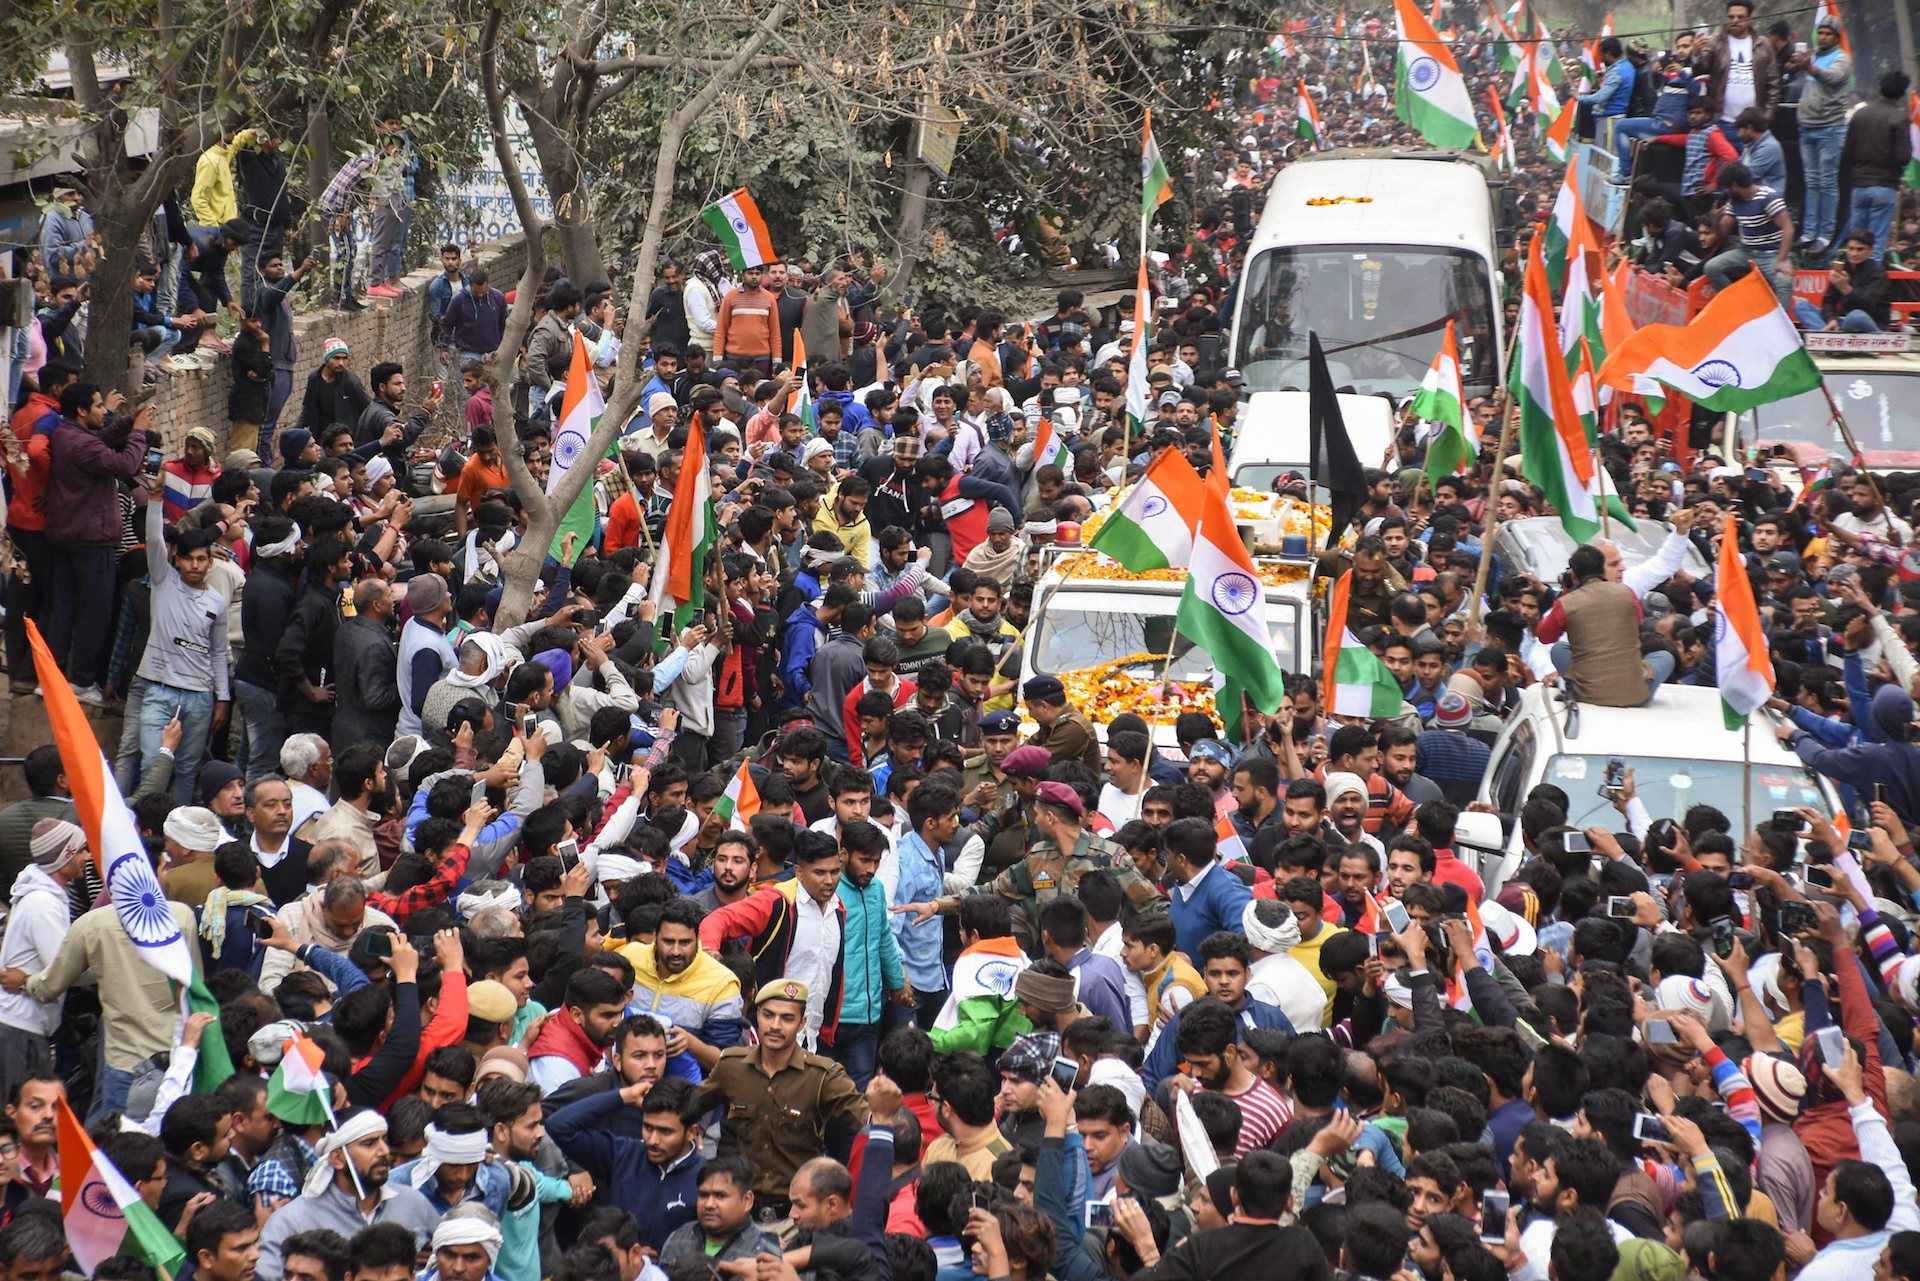 People gather in Faridabad on Wednesday, February 20, to pay their last tributes to army jawan Naik Sandeep Kaliraman, who died after succumbing to injuries sustained during the encounter with militants following the Pulwama terror attack